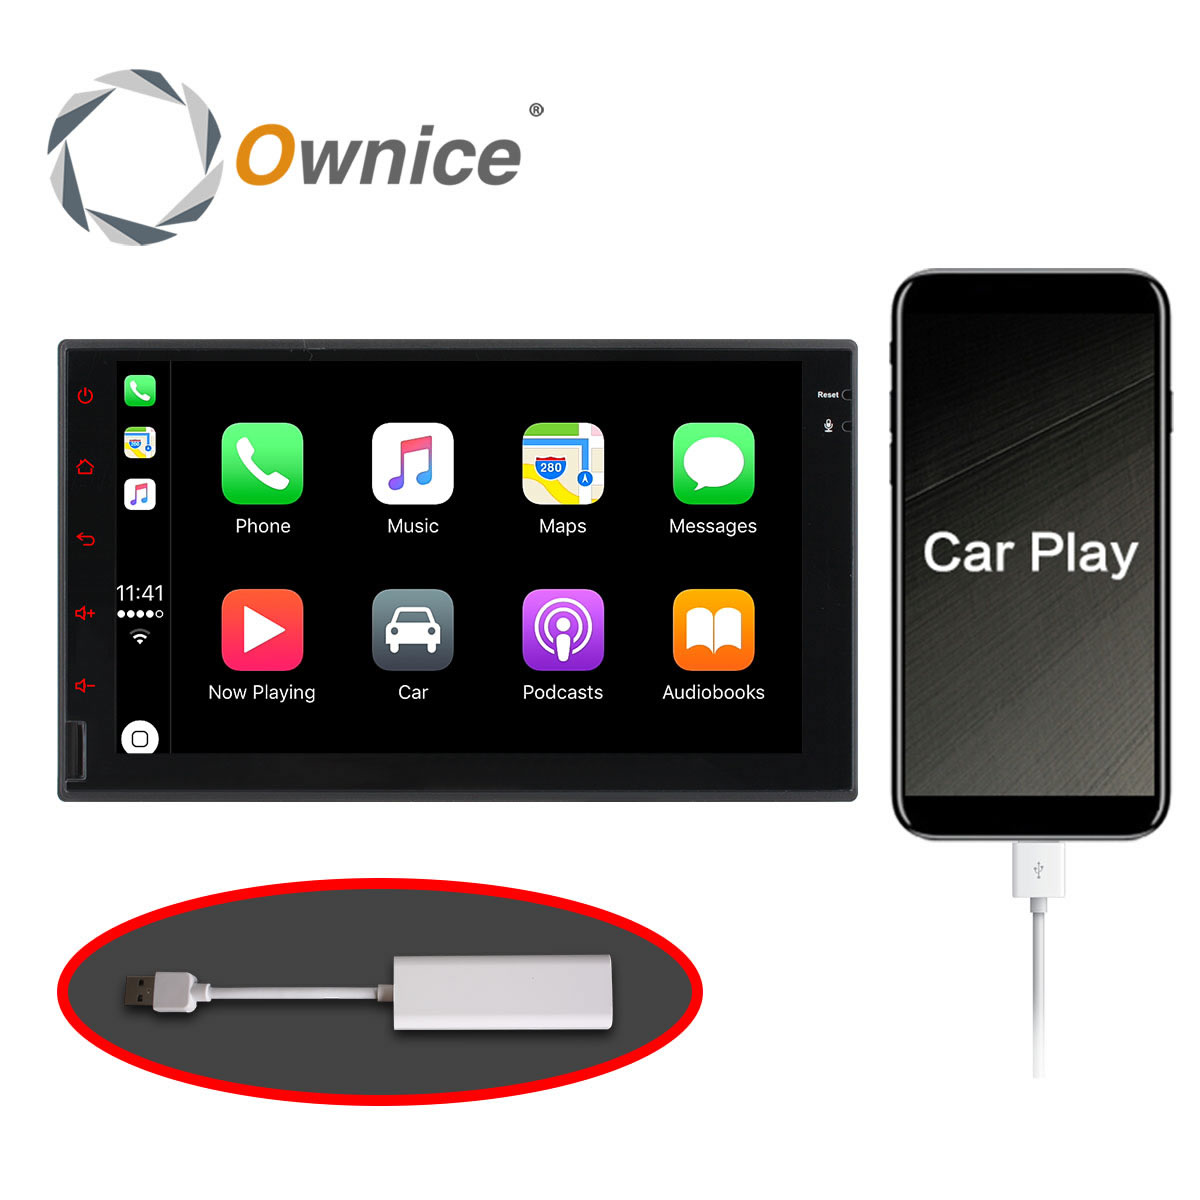 Ownice IOS Phone Radio Car play Connect by USB Support Touch and Voice Control Only for Ownice Car DVD Only radio pharmaceuticals and radio opaque contrast media